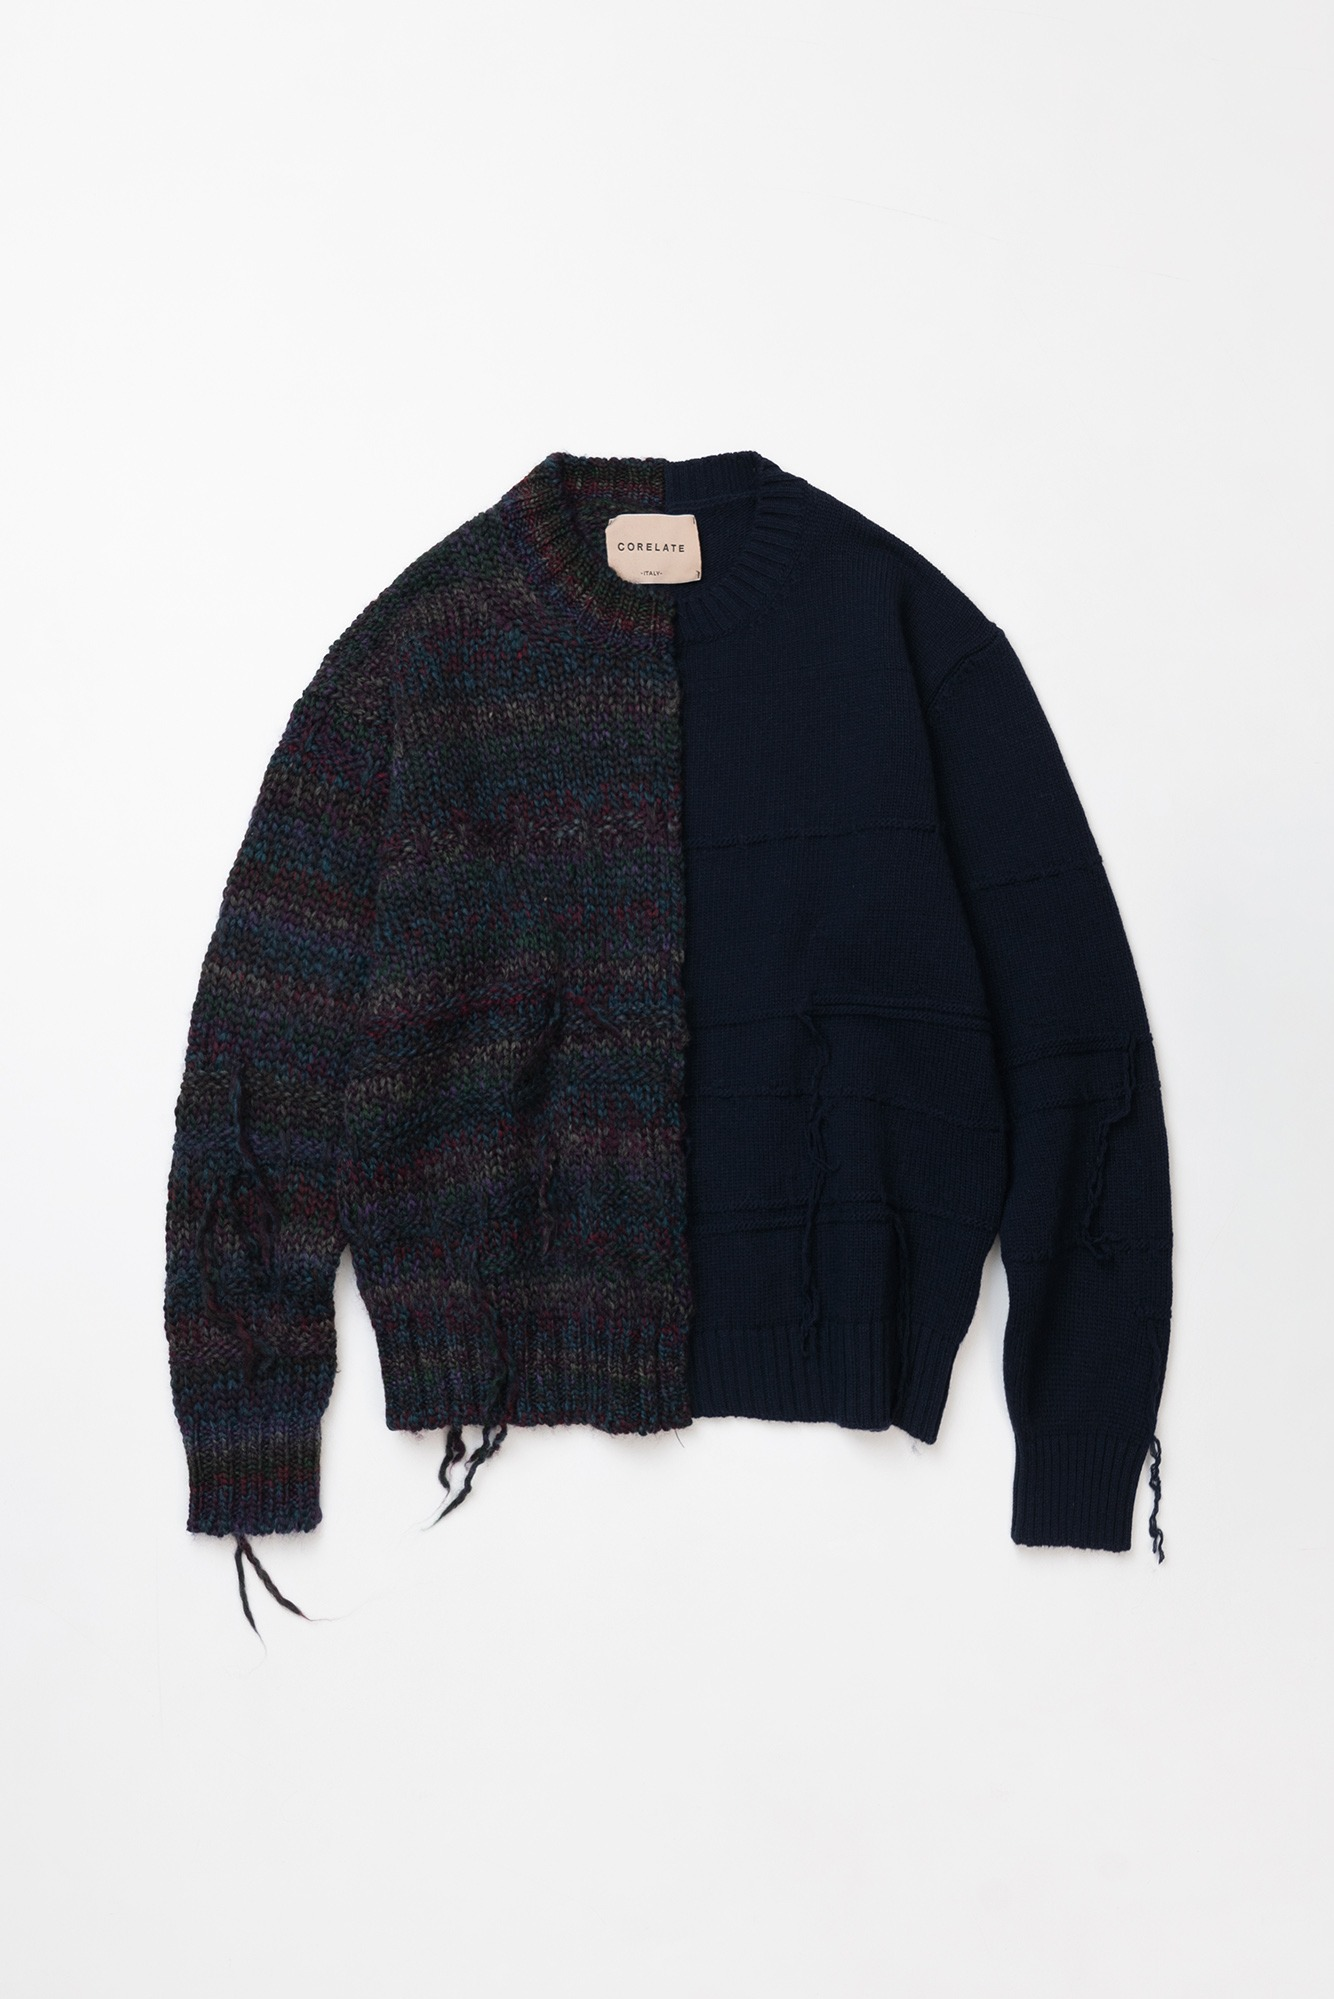 "CORELATE Striped knitted jumper ""Navy"""